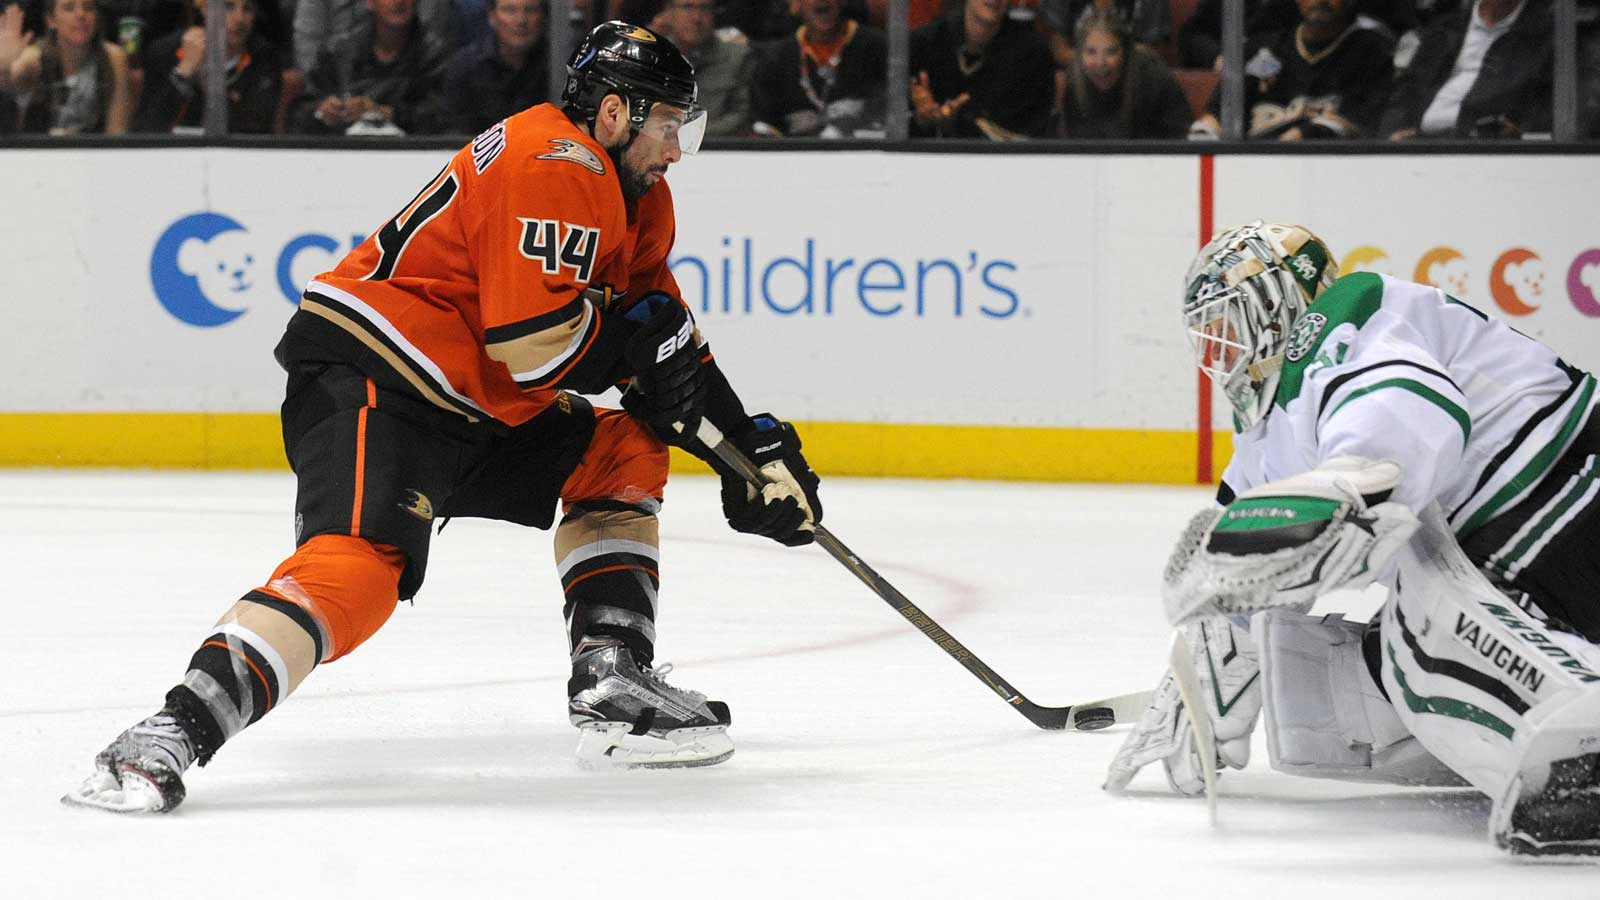 Ducks take over 1st place in Pacific Division